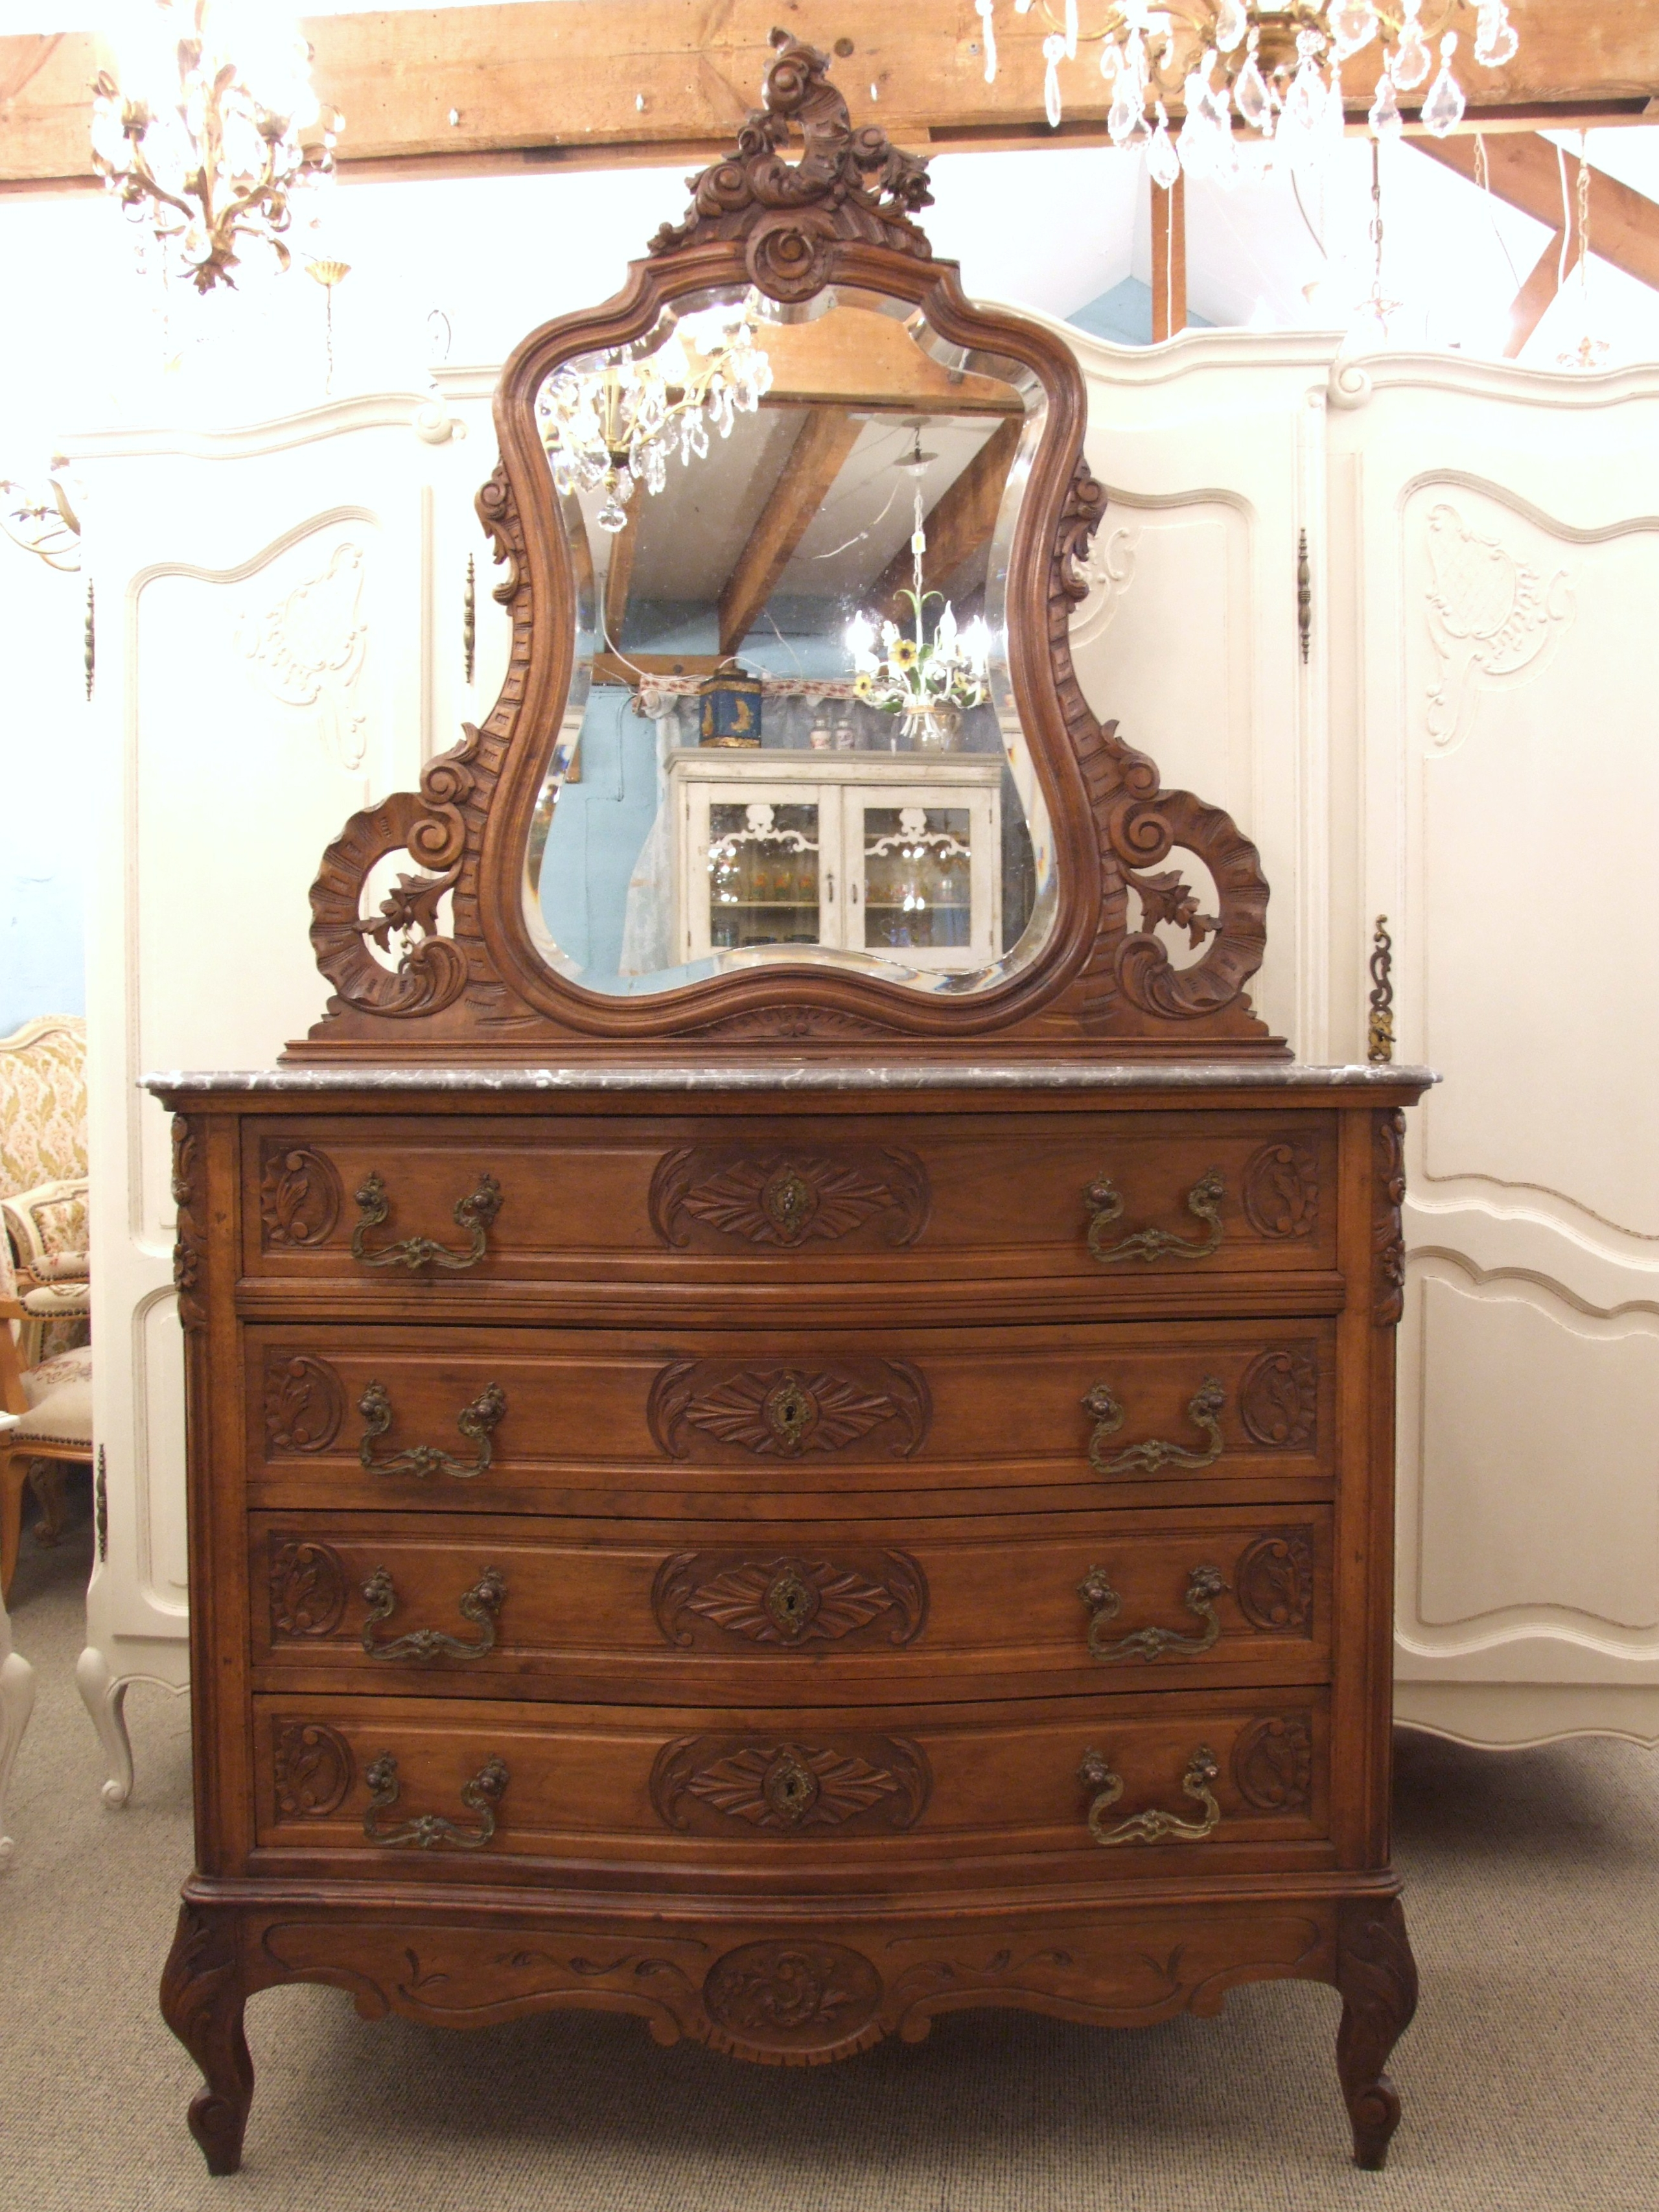 Louis Xv Antique Furniture Ideas On Foter